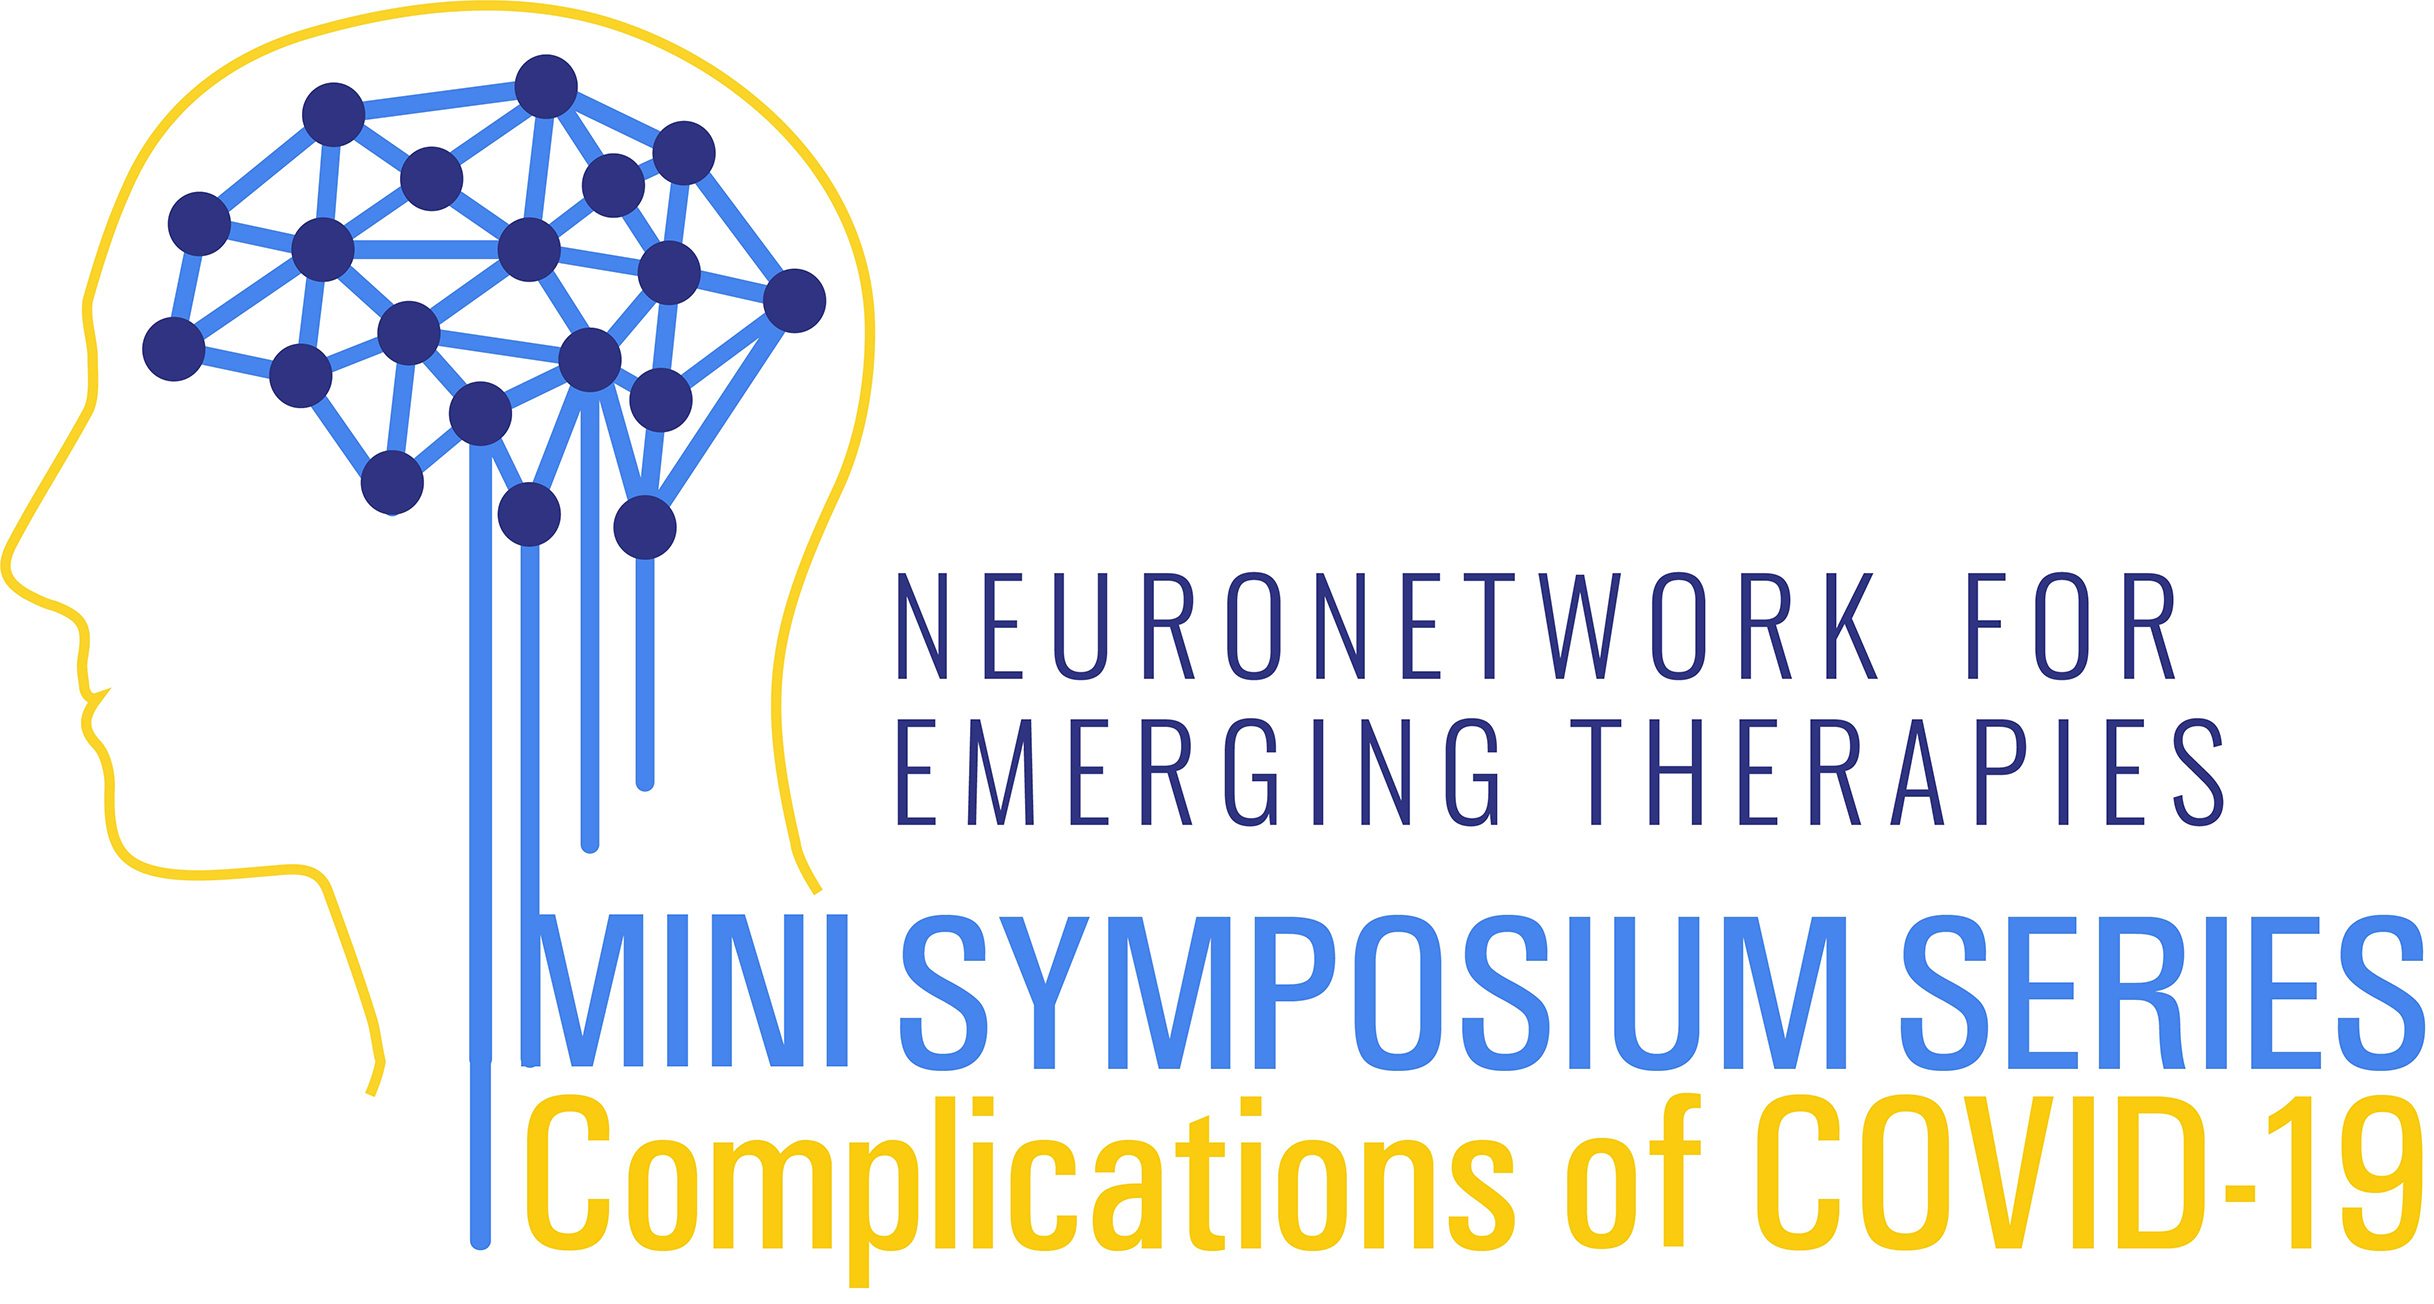 NeuroNetwork for Emerging Therapies Mini Symposium Series Complications of COVID19 logo